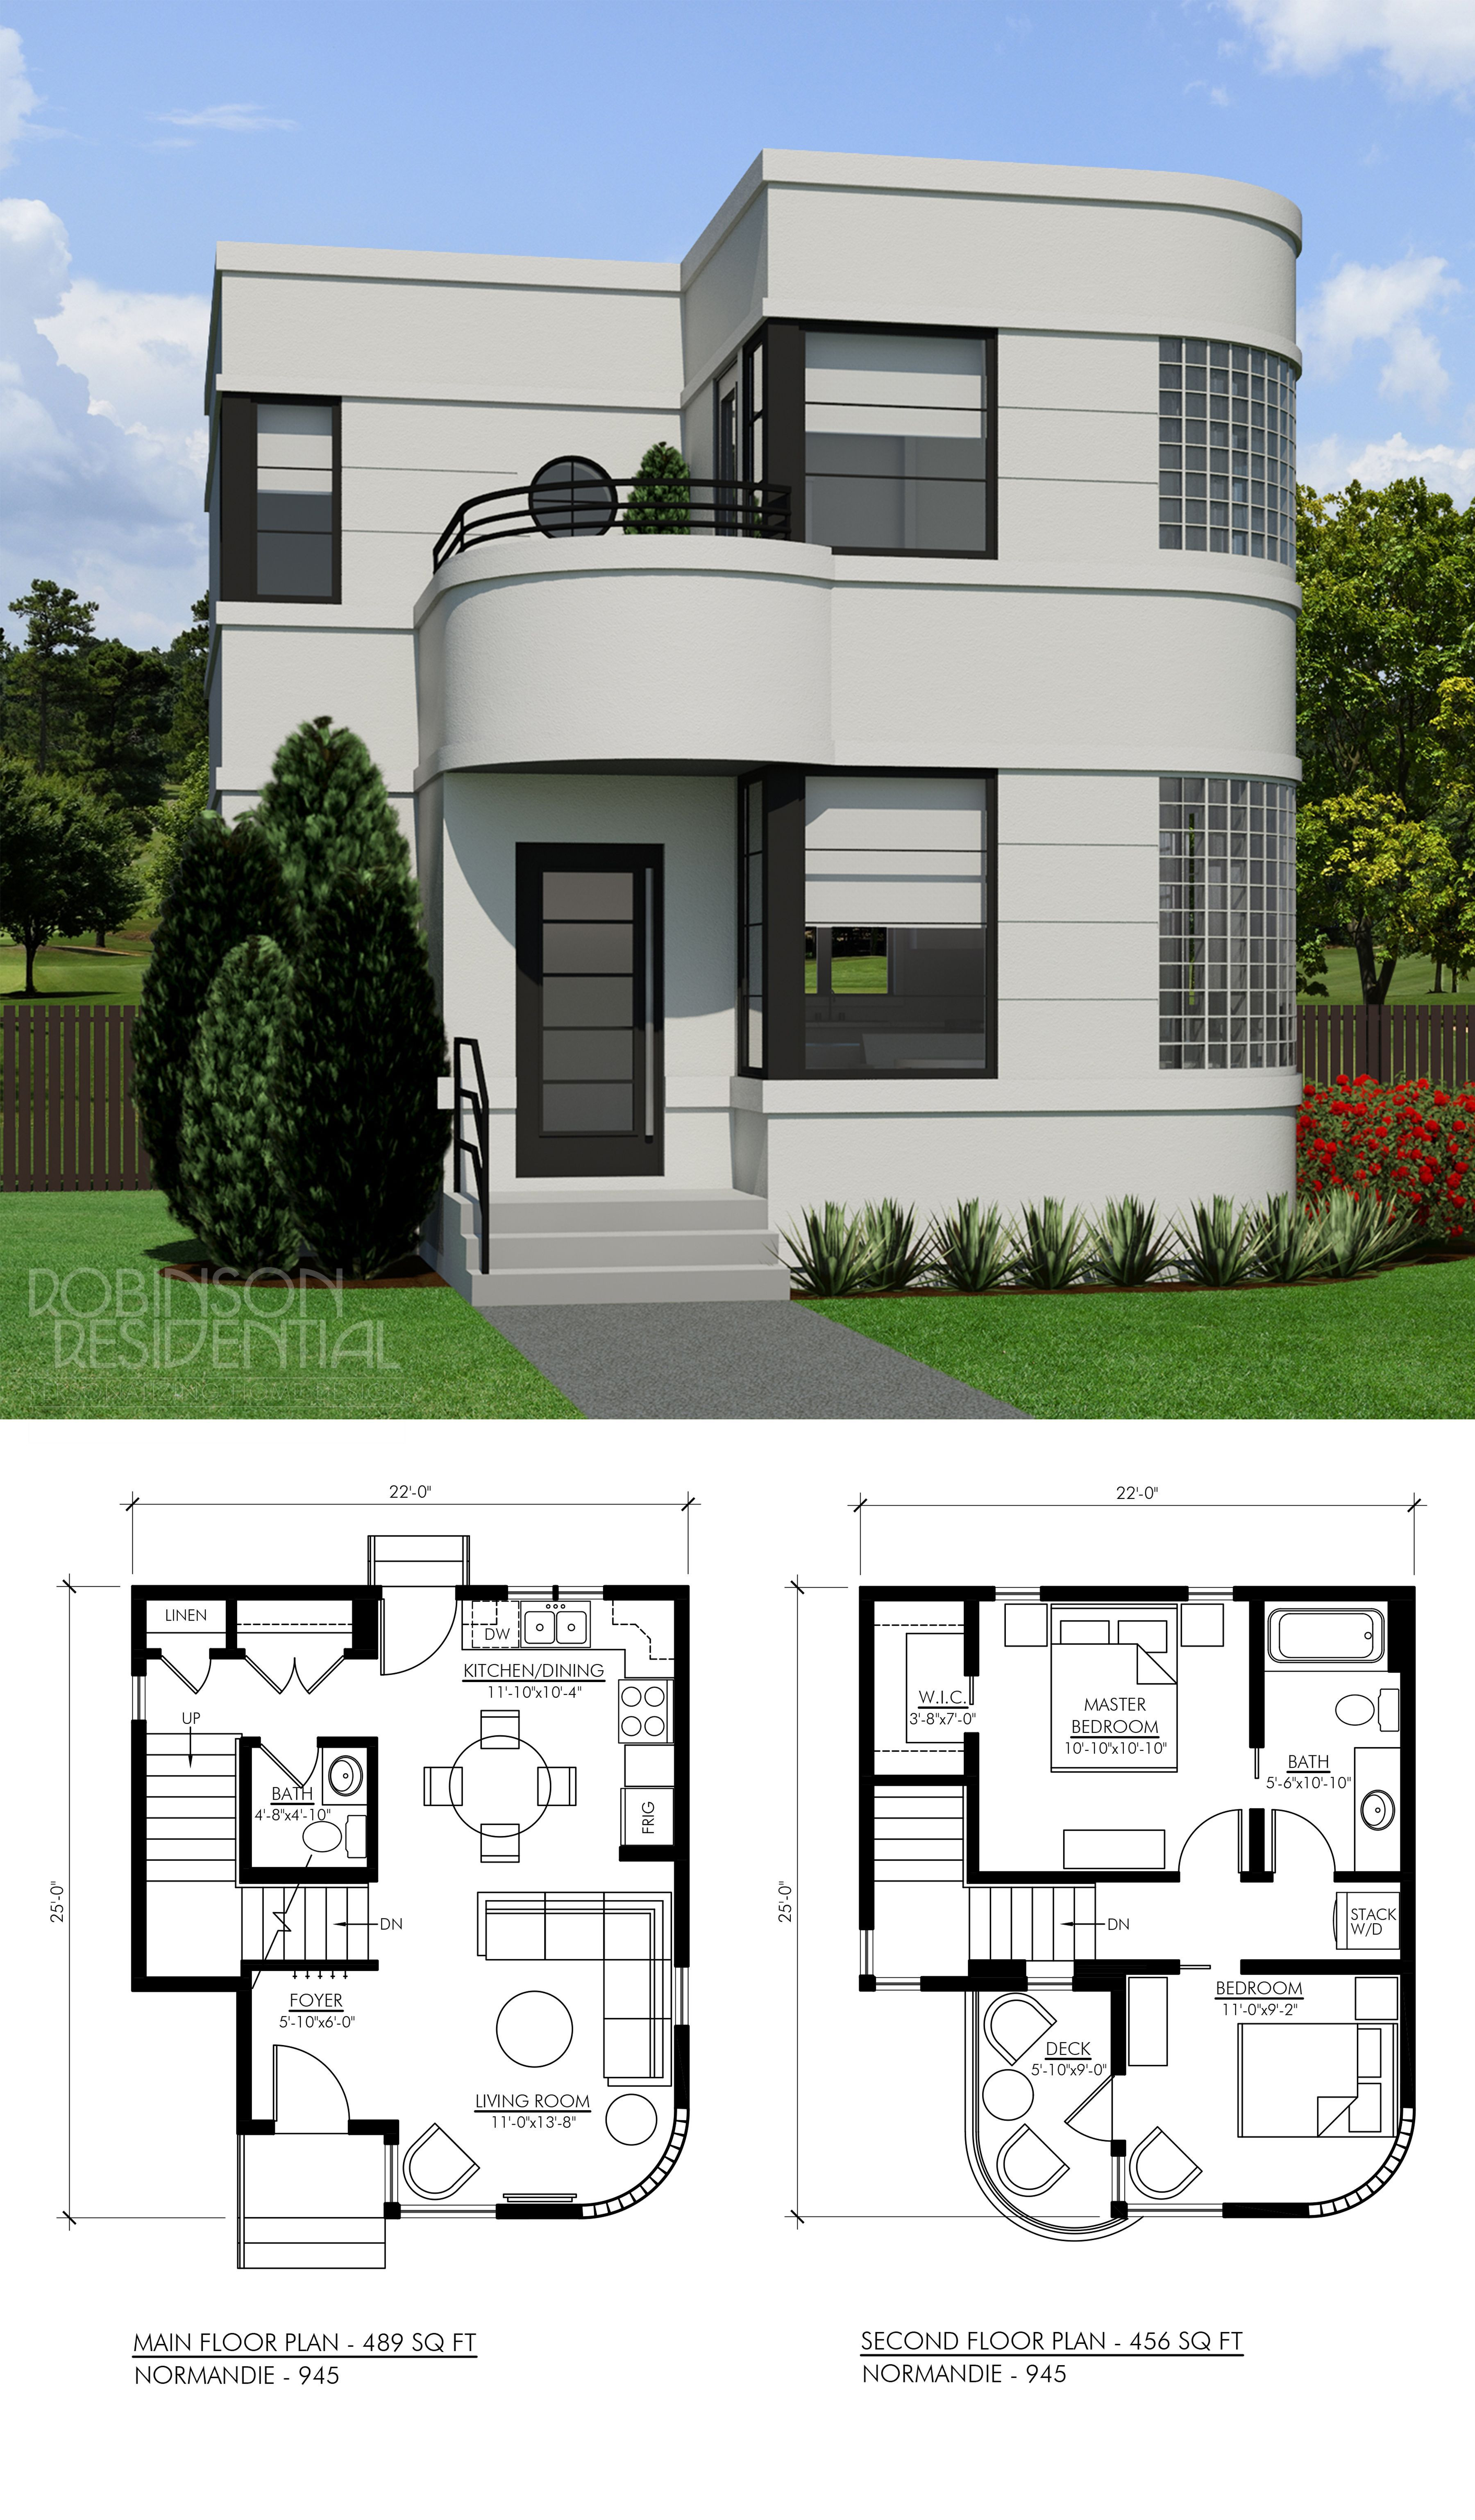 Small Modern Home Plans Beautiful Contemporary norman 945 In 2019